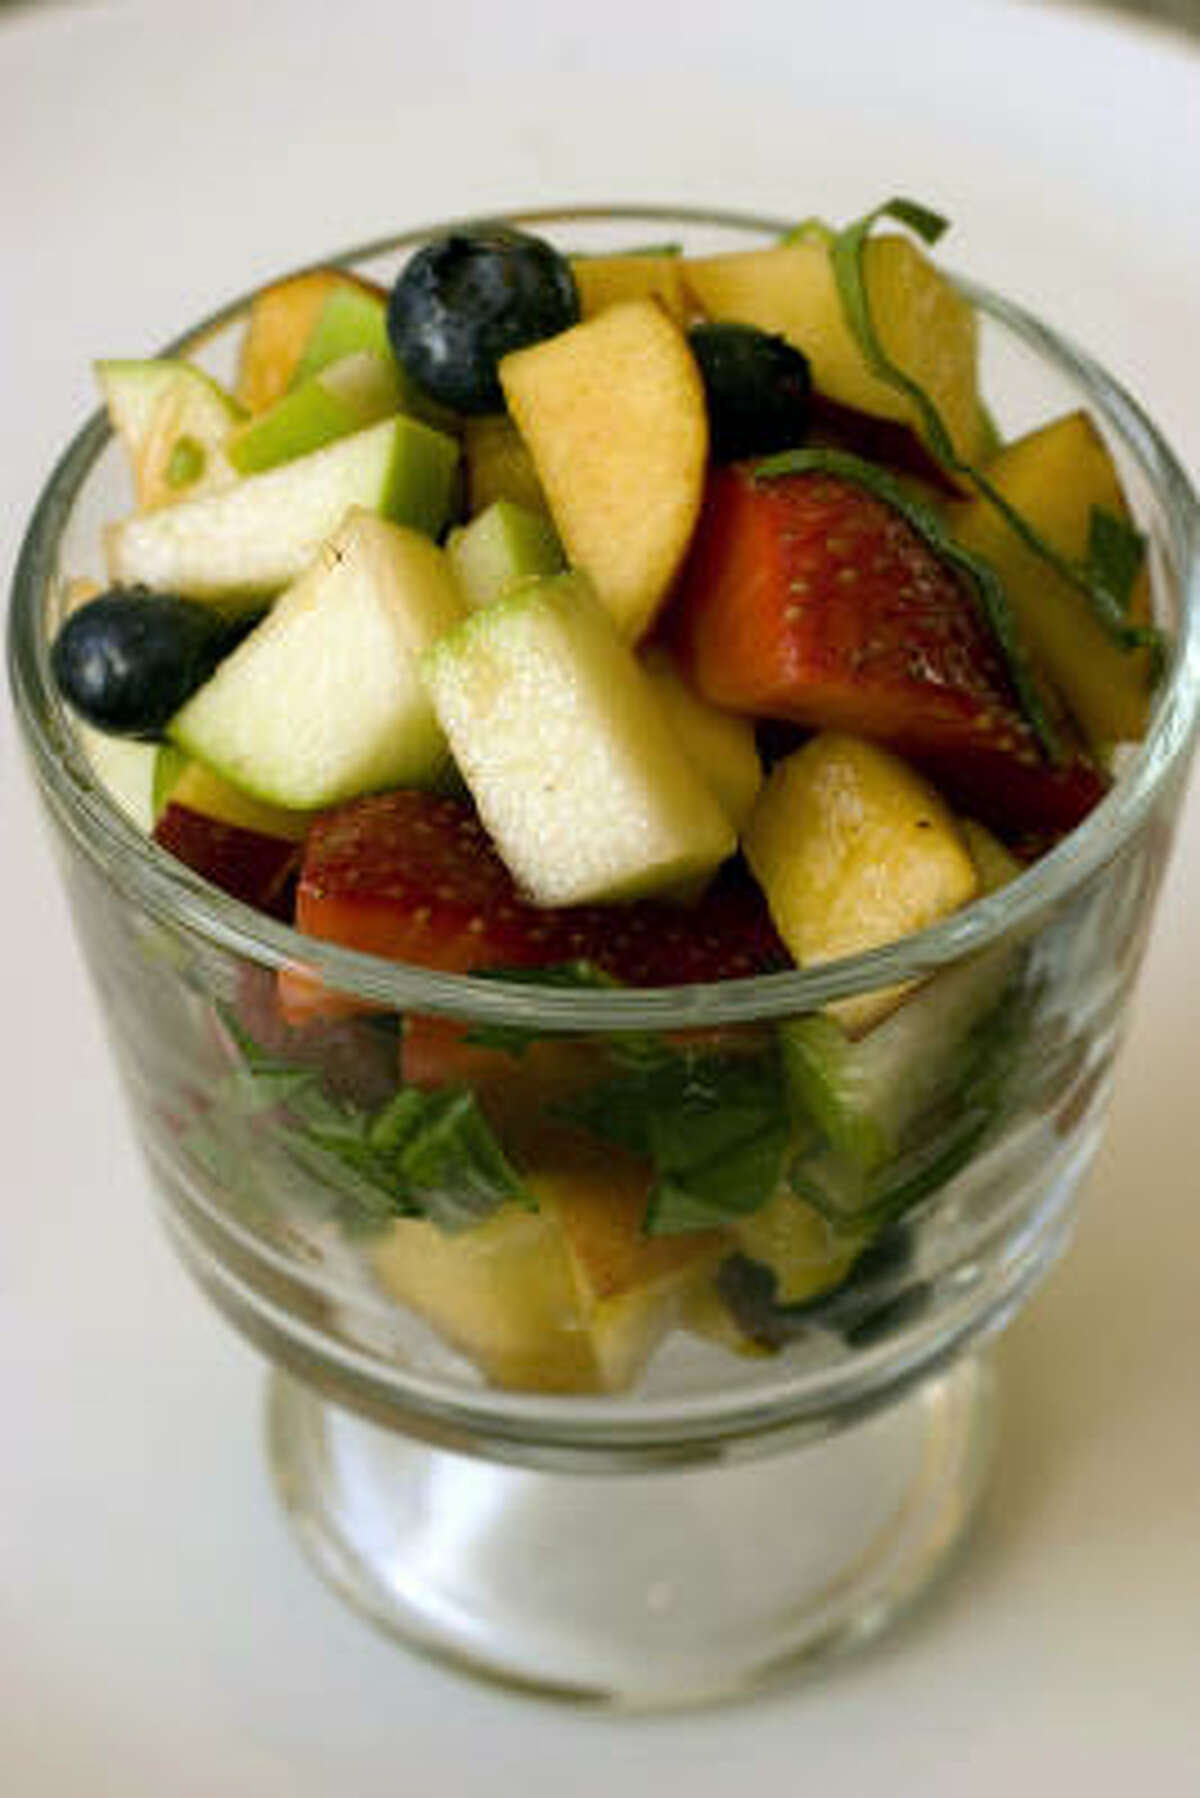 For patients dealing with side effects of chemotherapy, a crunchy fruit salad may hit the spot.